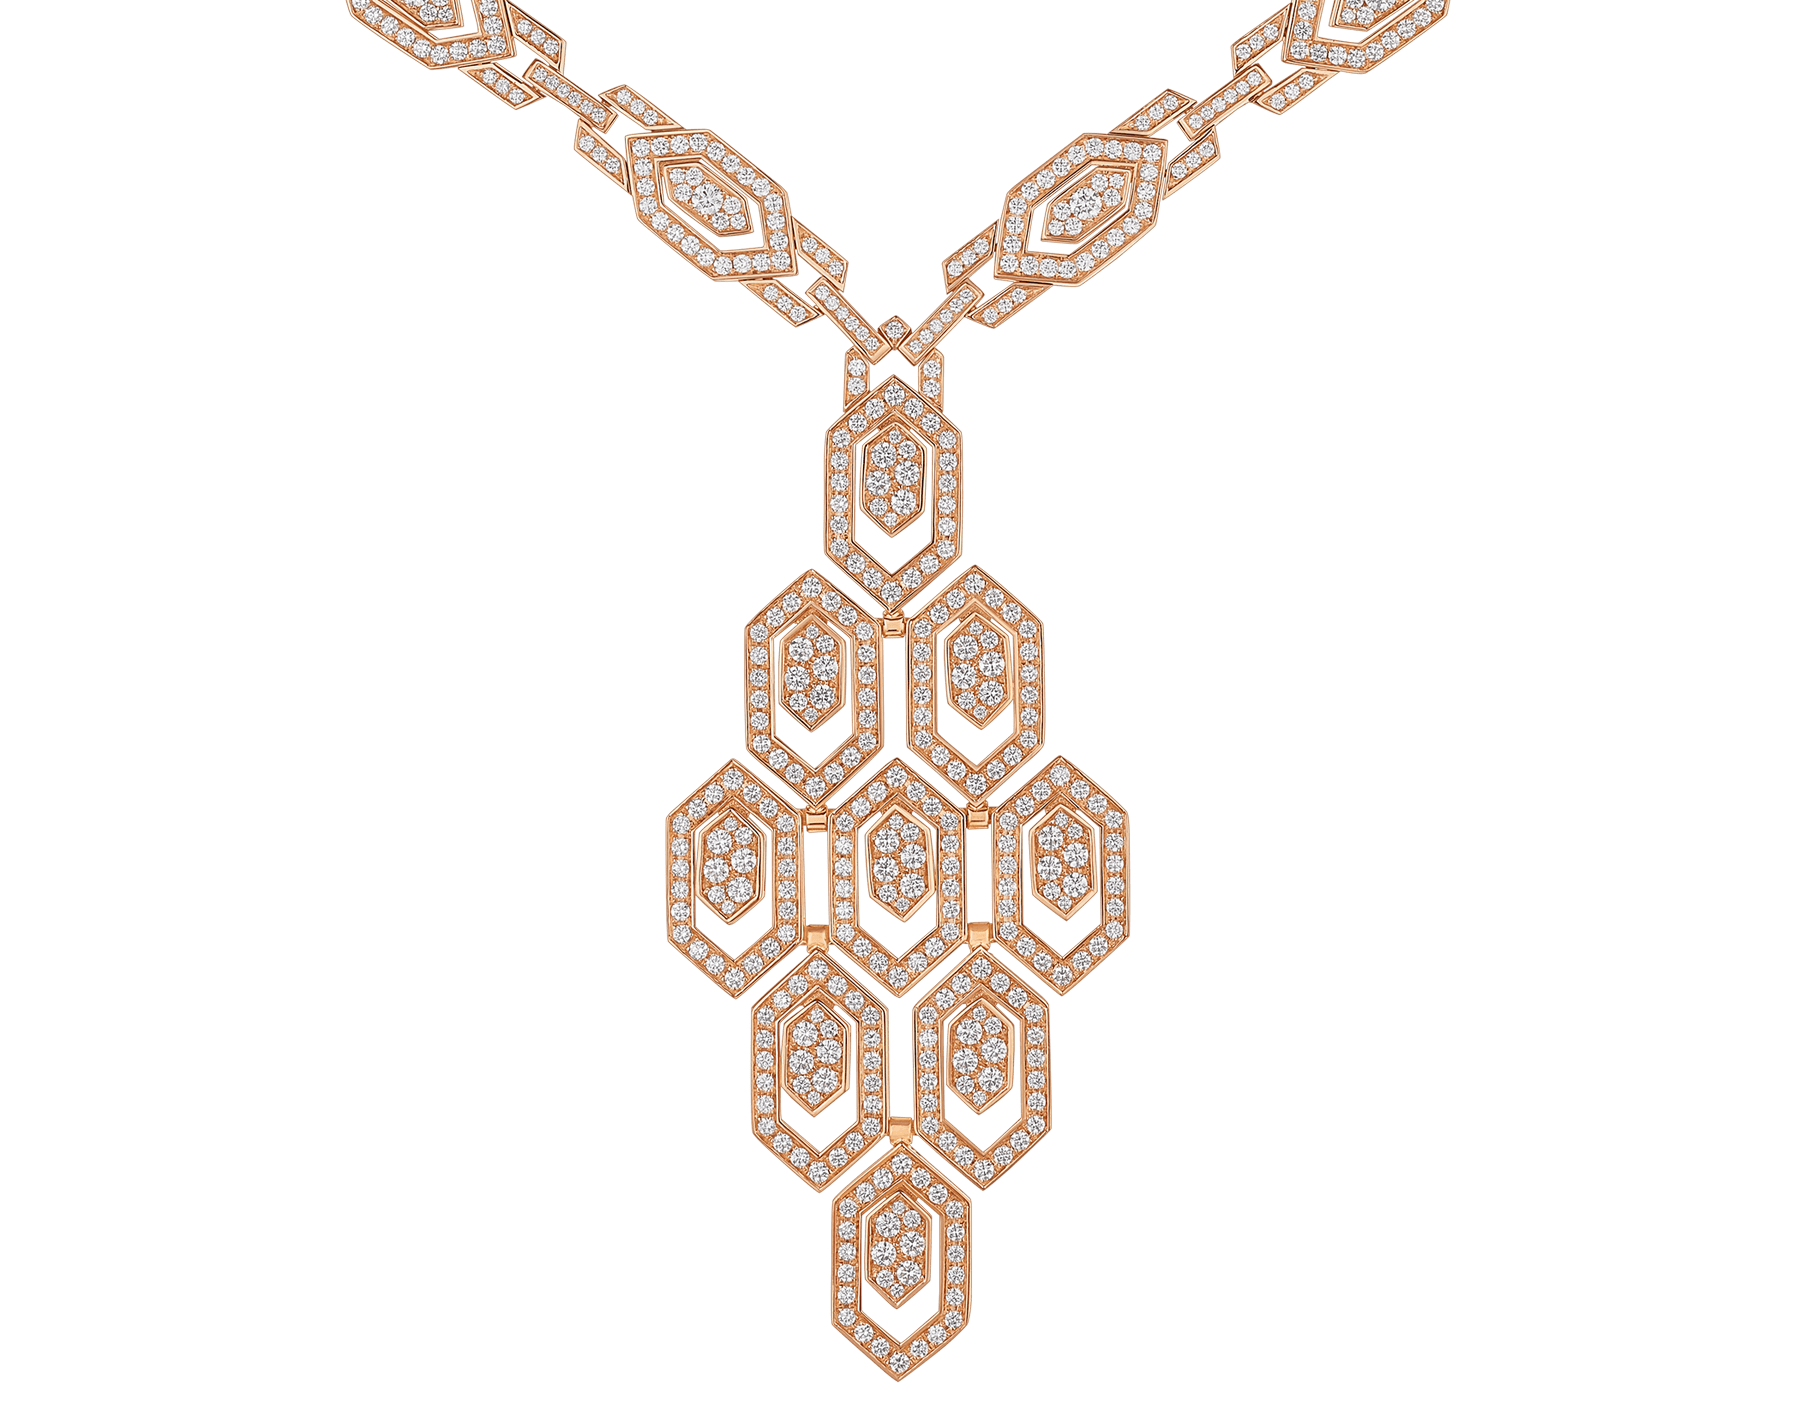 Serpenti 18 kt rose gold necklace set with pavé diamonds both on the chain and pendant. 356194 image 3